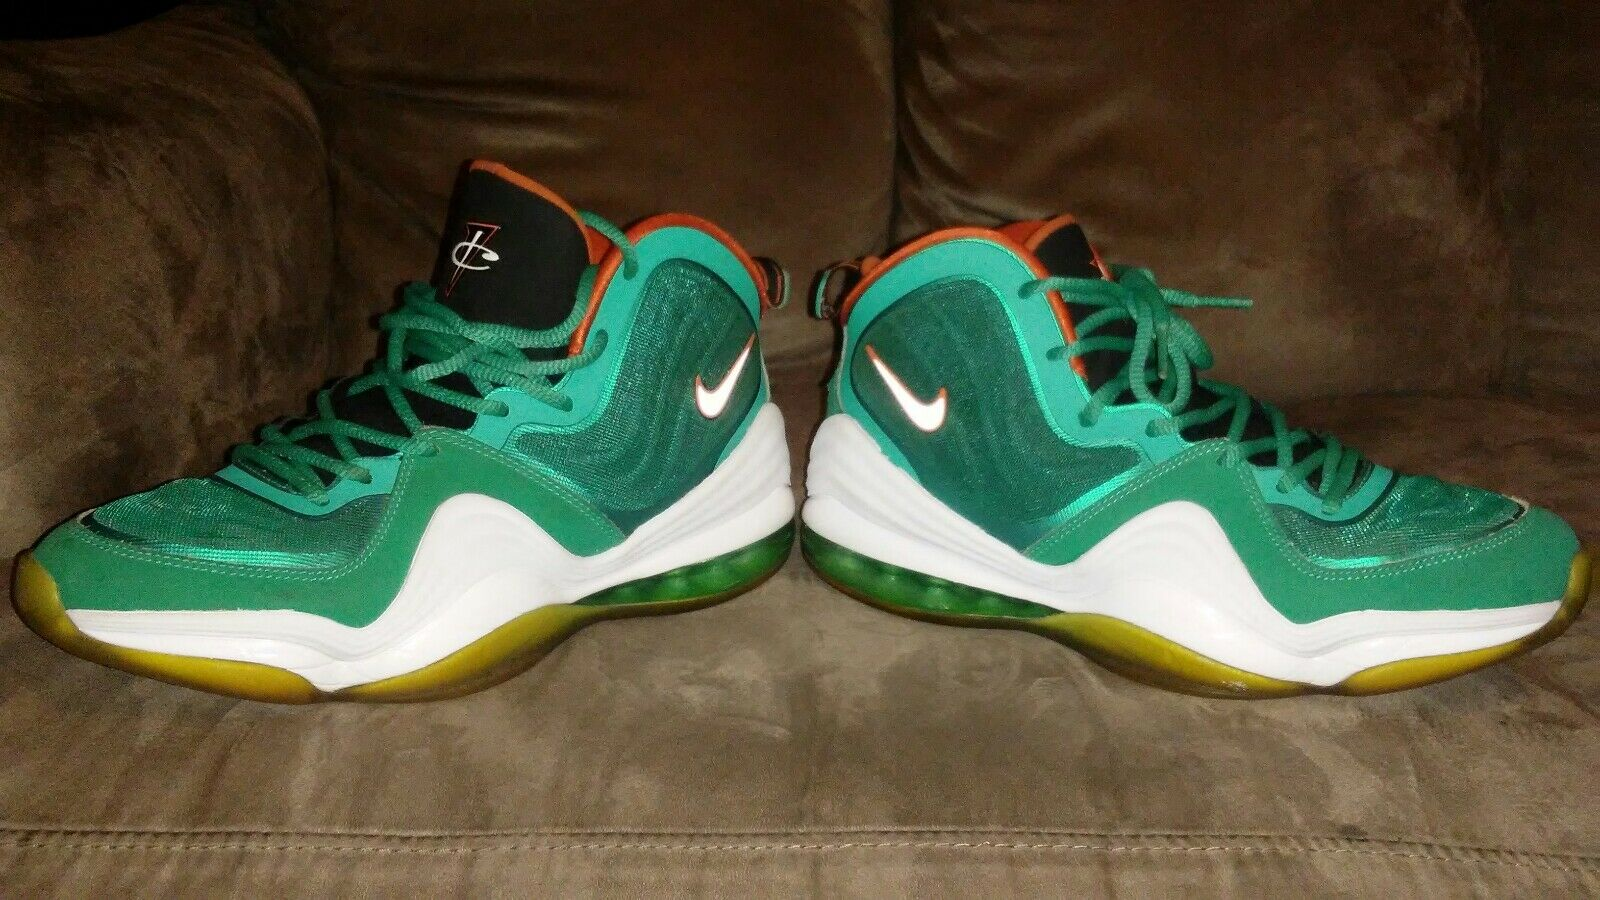 Cheap and beautiful fashion Nike Air Max PENNY V 5 MIAMI DOLPHINS TEAL GREEN WHITE ORANGE 537331-300 Price reduction